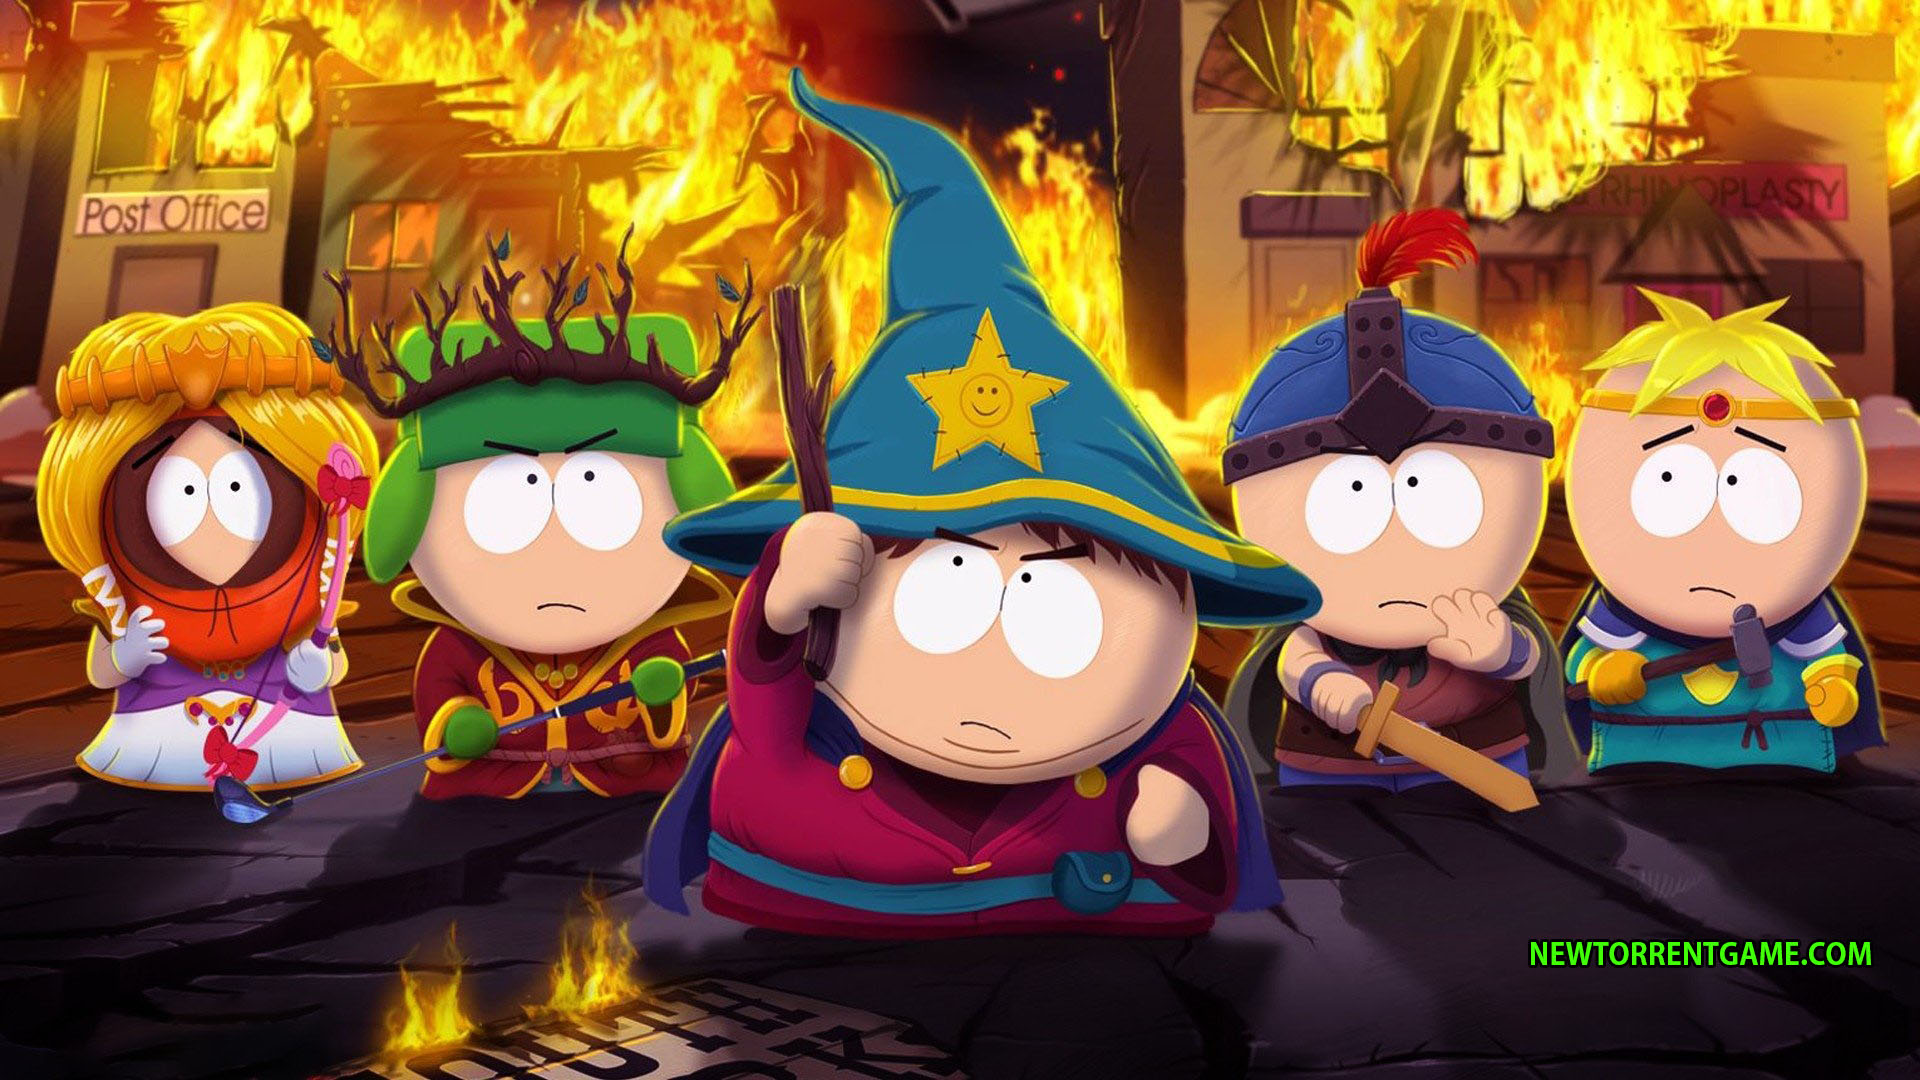 South Park The Stick Of Truth Mac Video Game Developed By Obsidian Entertainment Collaboration With Digital Studios And Published Ubisoft